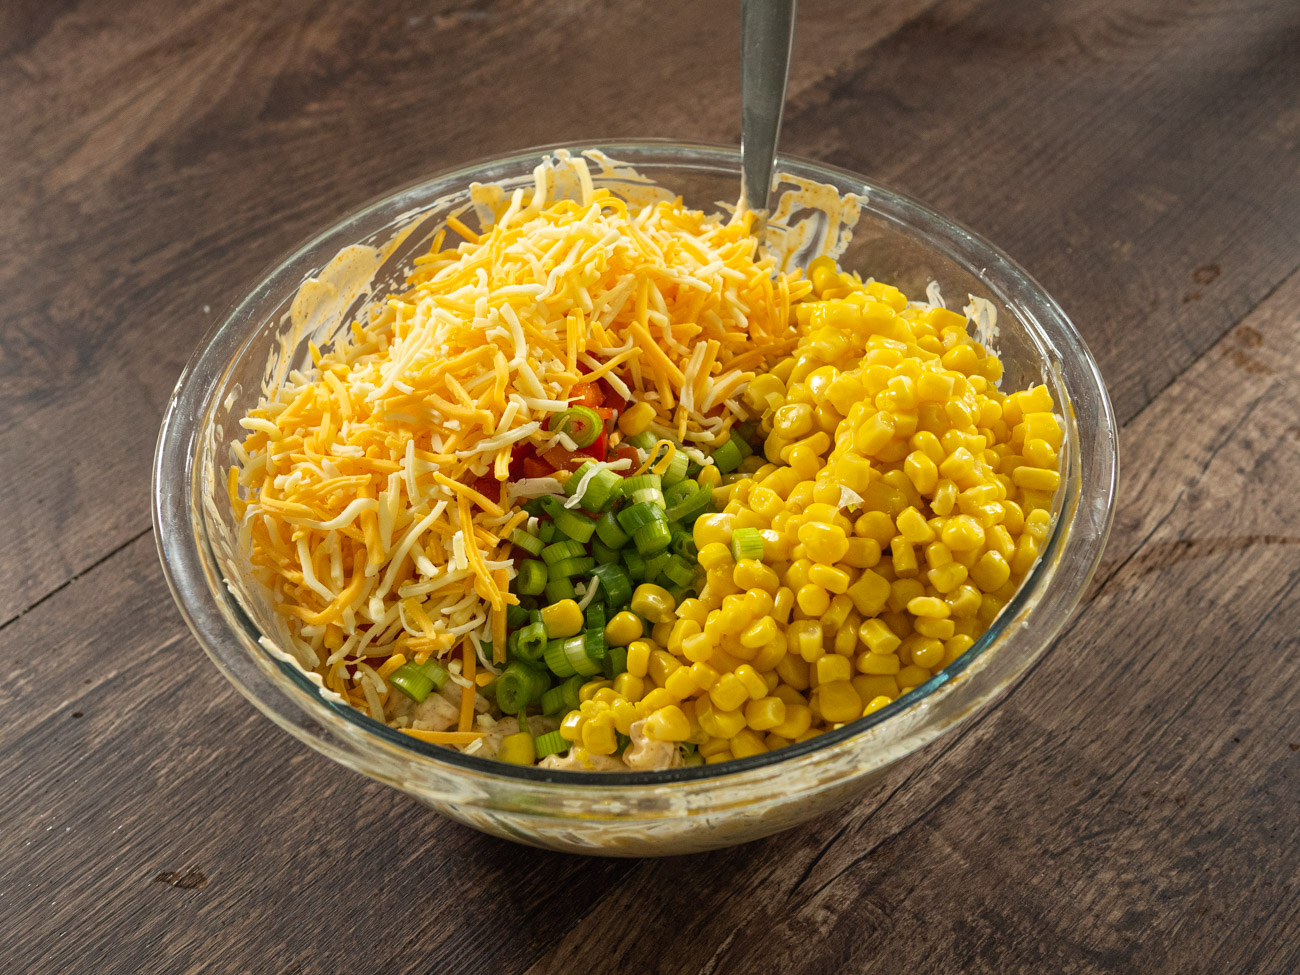 Add green onions, bell pepper, corn, and cheese. Toss again to mix and then allow to chill in the fridge for 1-2 hours before serving.